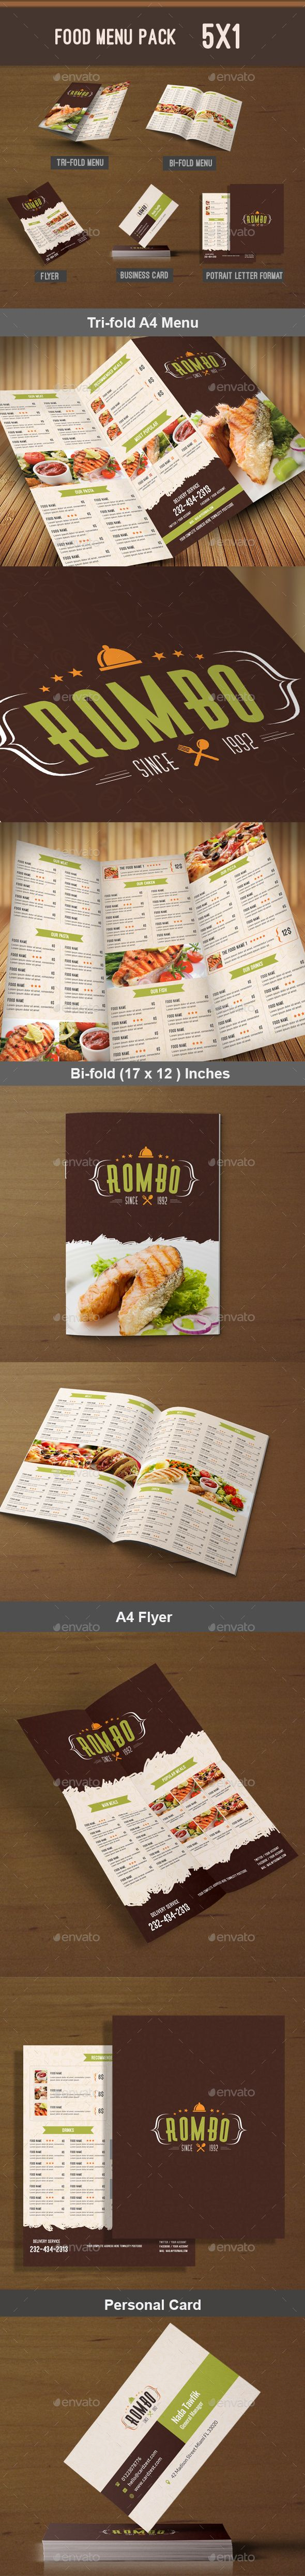 Food Menu Pack Template PSD #design Download: http://graphicriver.net/item/food-menu-pack-1/13638517?ref=ksioks